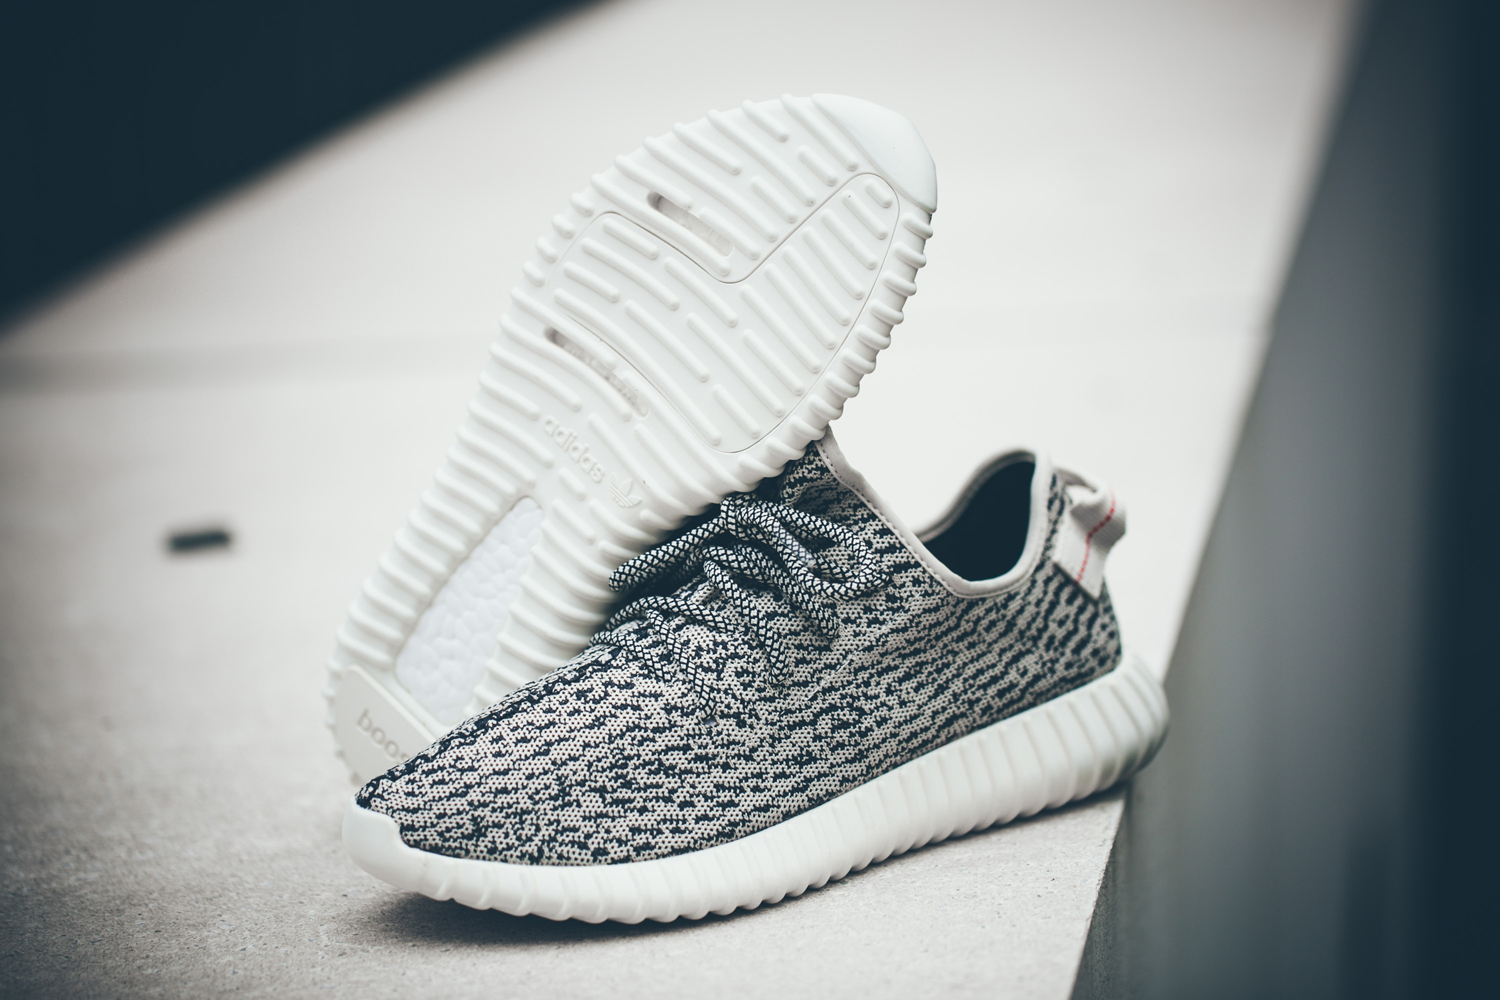 Toddler Adidas yeezy price 350 buy 54% Off Barton Rural School